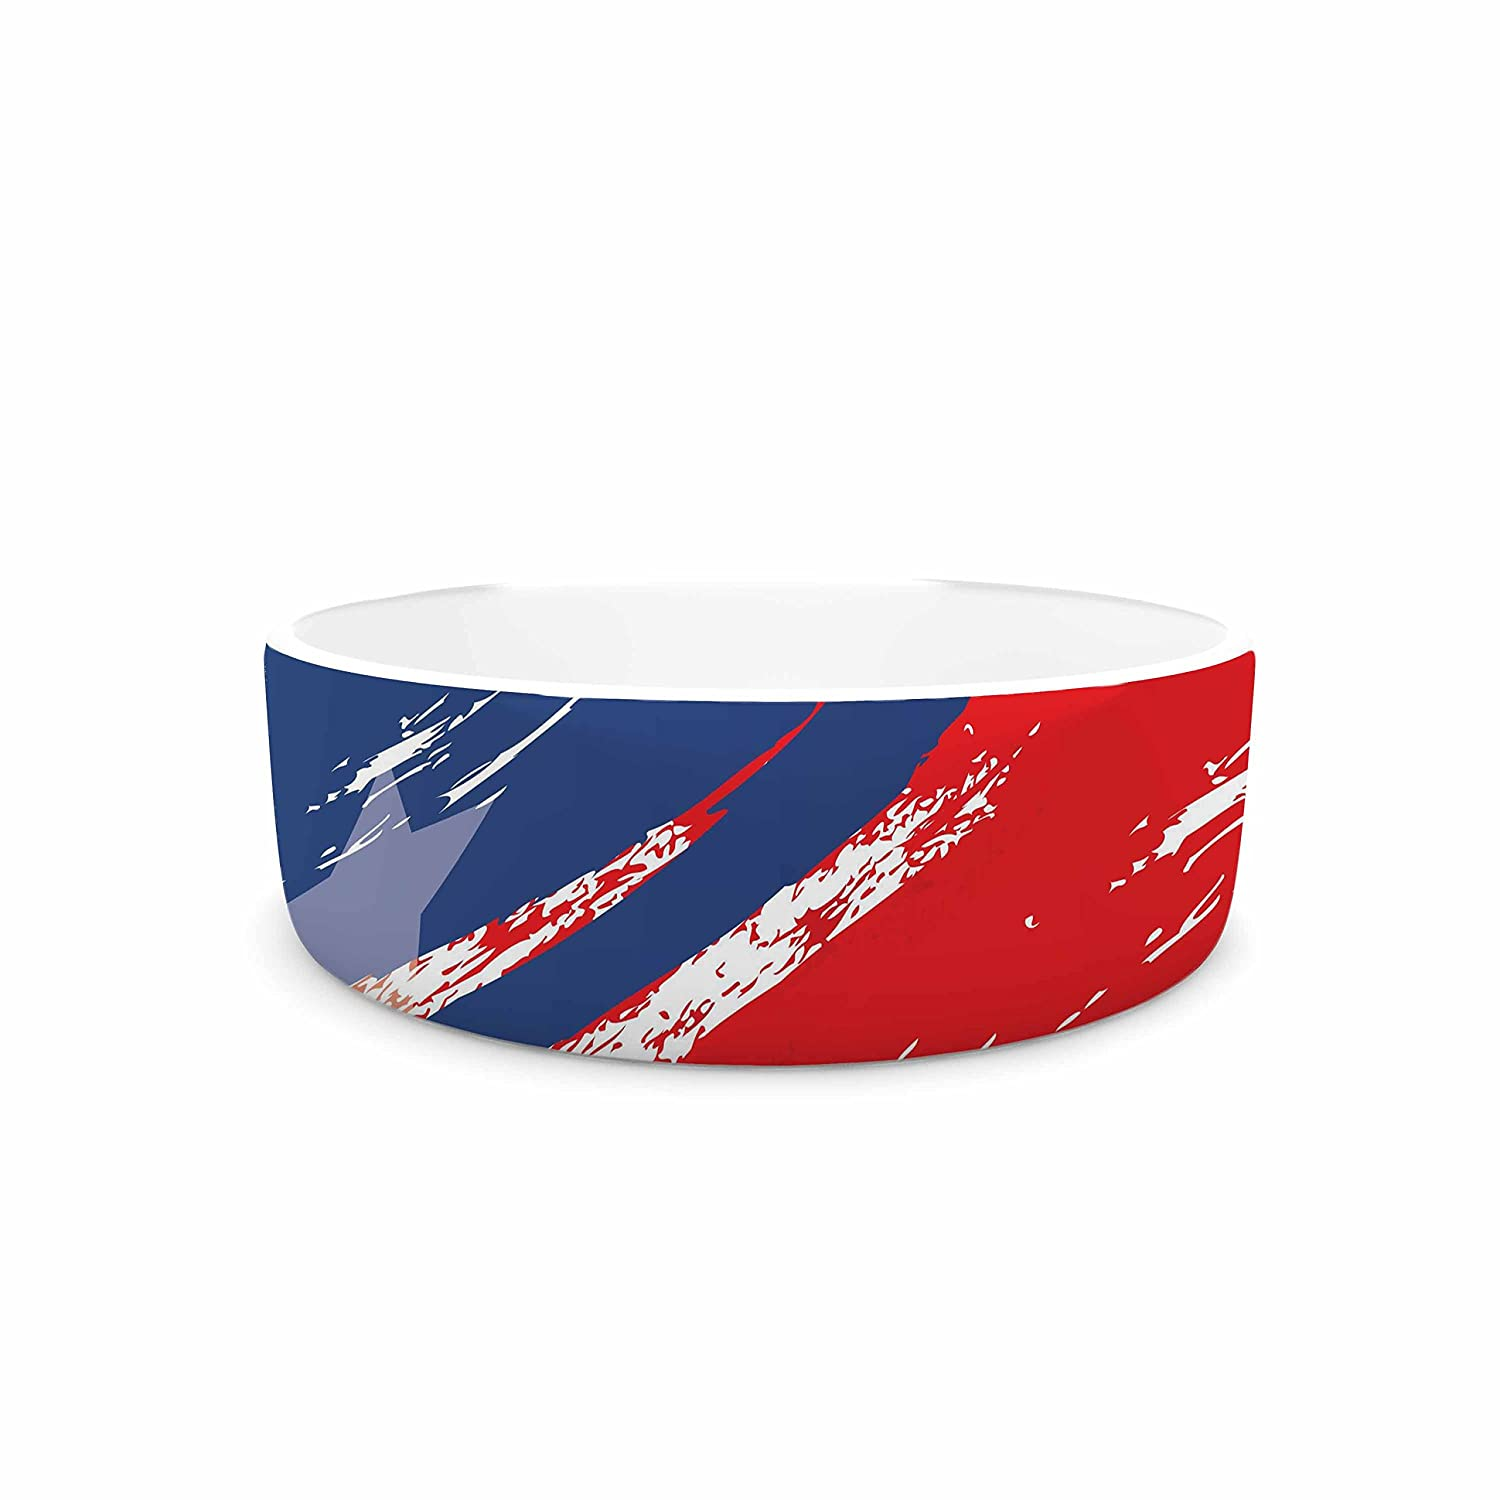 KESS InHouse NL Designs Red White bluee  Red White Pet Bowl, 7